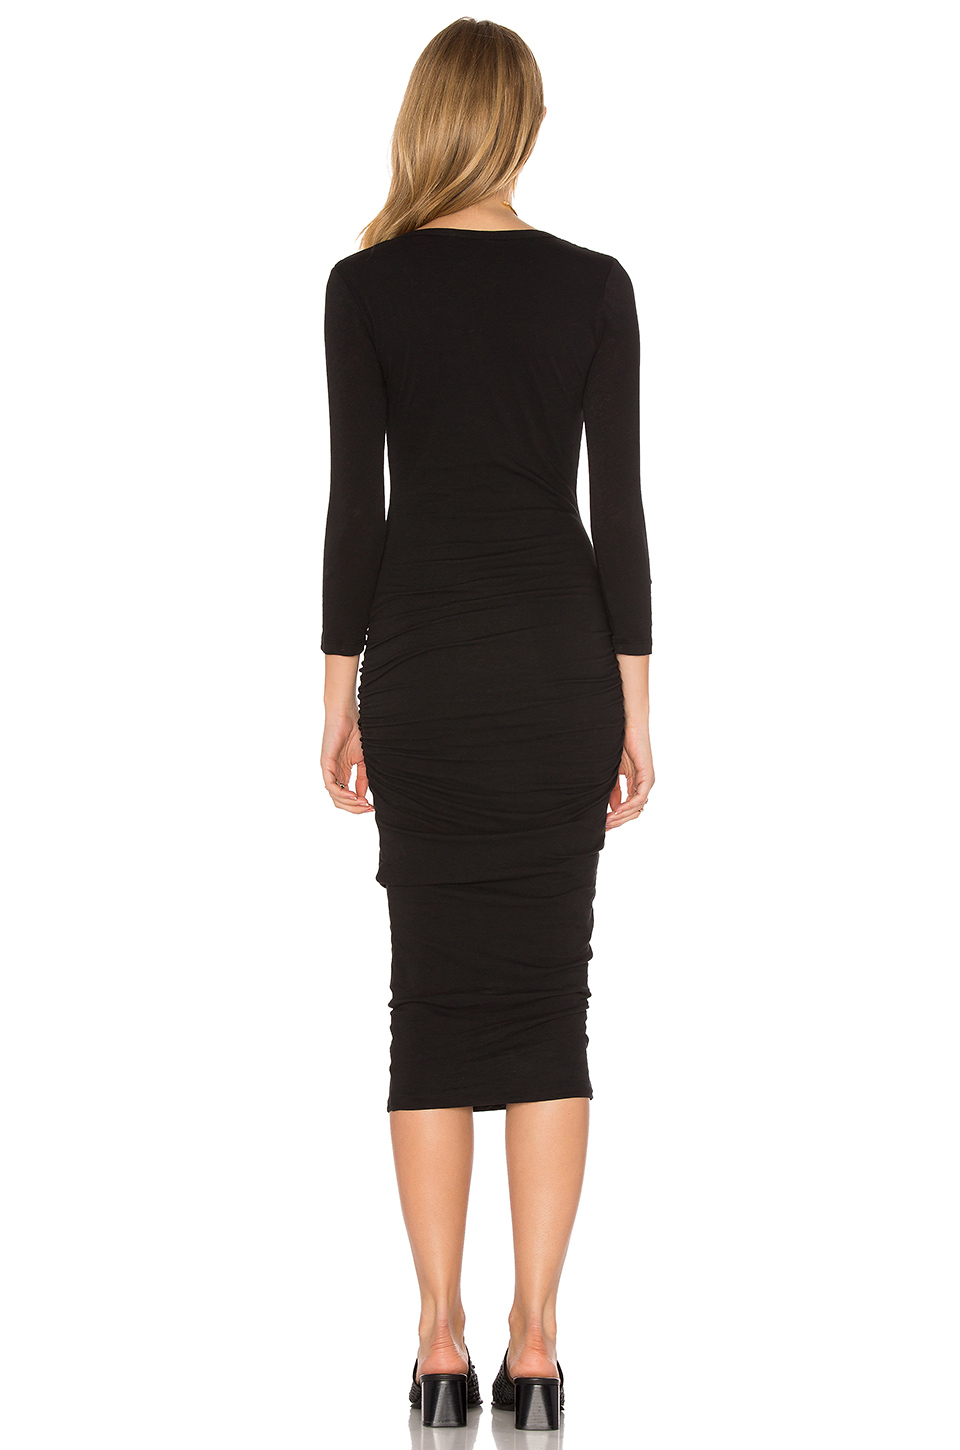 James Perse Classic V-Neck Skinny Dress